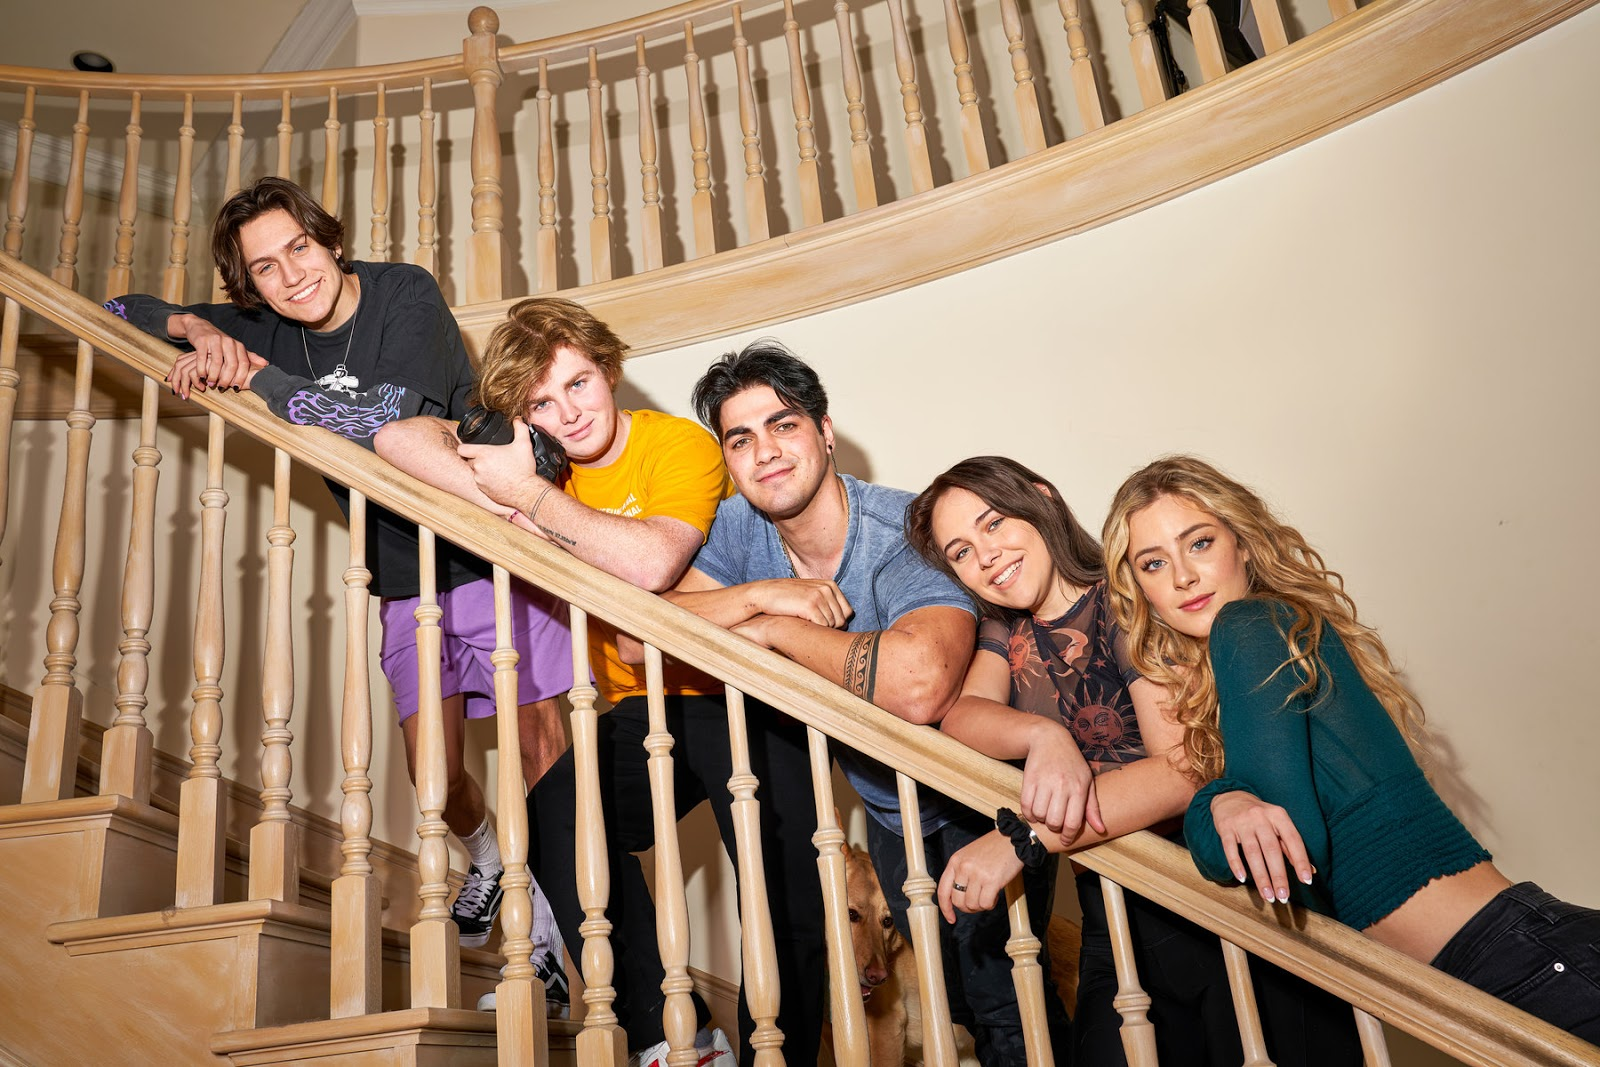 Five TikTok influencers standing on a staircase and leaning on eachother.